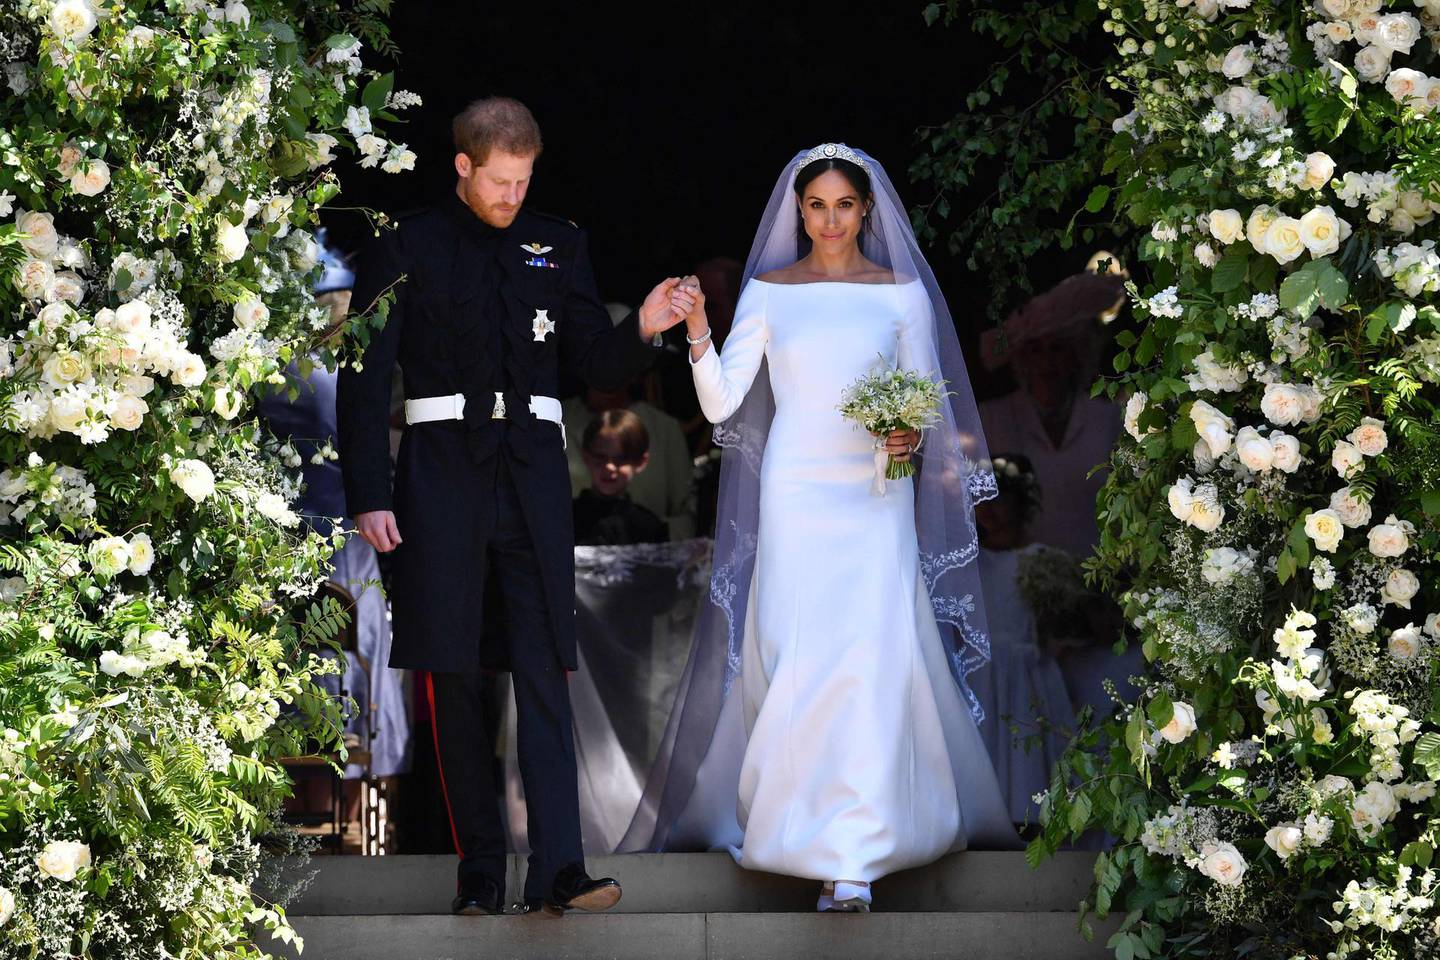 (FILES) In this file photo taken on May 19, 2018 Britain's Prince Harry, Duke of Sussex and his wife Meghan, Duchess of Sussex walk down the west steps of St George's Chapel, Windsor Castle, in Windsor, after their wedding ceremony. Meghan Markle has experienced remarkable highs and lows during a tumultuous period in which she married into royalty and became a mother before souring on life in Britain and returning to the United States. The 39-year-old American former television actress shot to global stardom with her engagement to Prince Harry in 2017 and their fairytale wedding six months later. She gave birth to their son, Archie, in 2019.  / AFP / POOL / Ben STANSALL